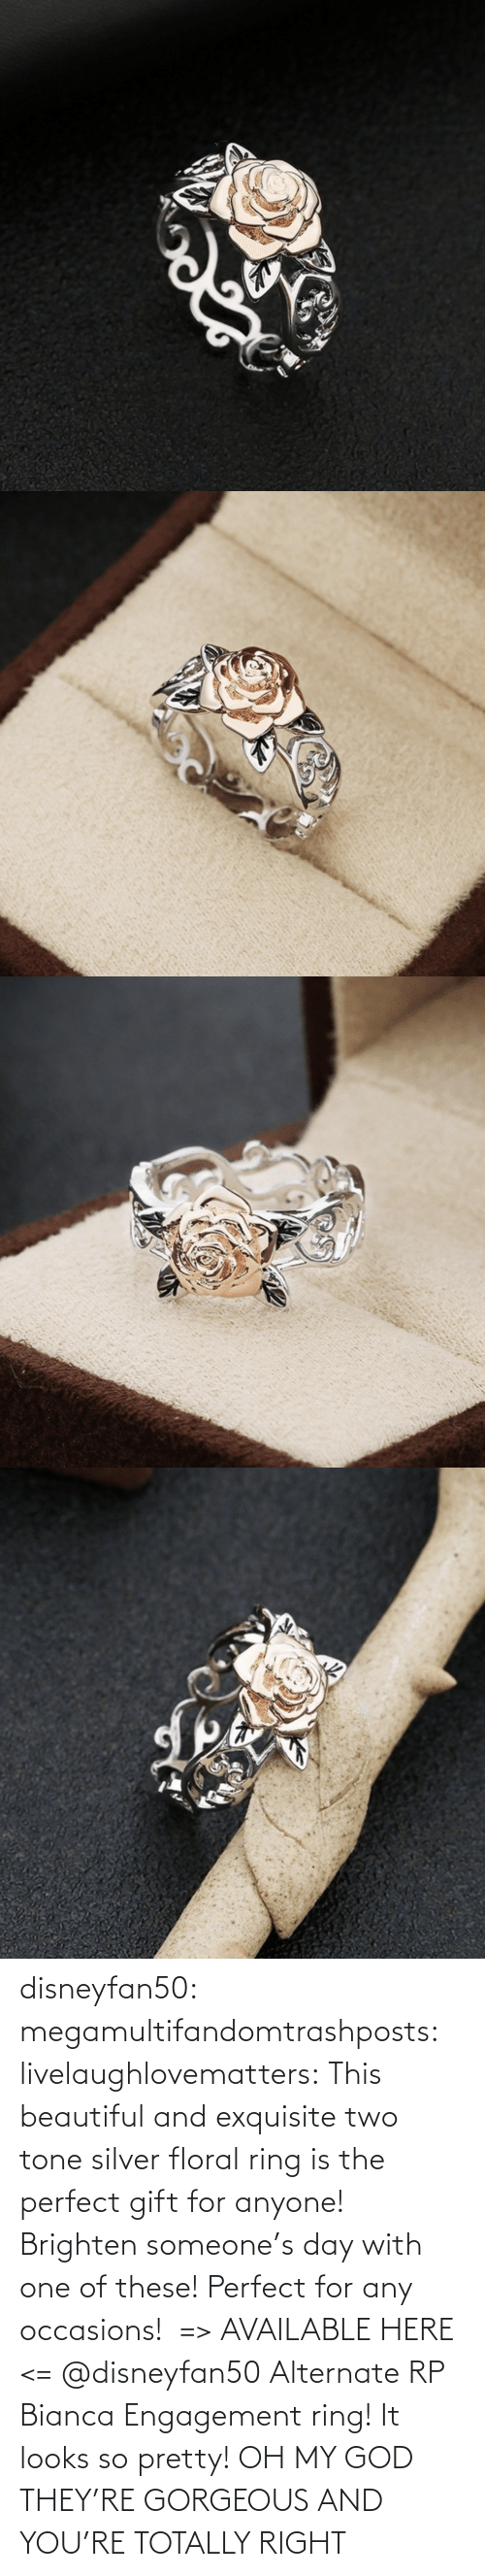 tone: disneyfan50: megamultifandomtrashposts:  livelaughlovematters:  This beautiful and exquisite two tone silver floral ring is the perfect gift for anyone! Brighten someone's day with one of these! Perfect for any occasions!  => AVAILABLE HERE <=    @disneyfan50 Alternate RP Bianca Engagement ring! It looks so pretty!  OH MY GOD THEY'RE GORGEOUS AND YOU'RE TOTALLY RIGHT